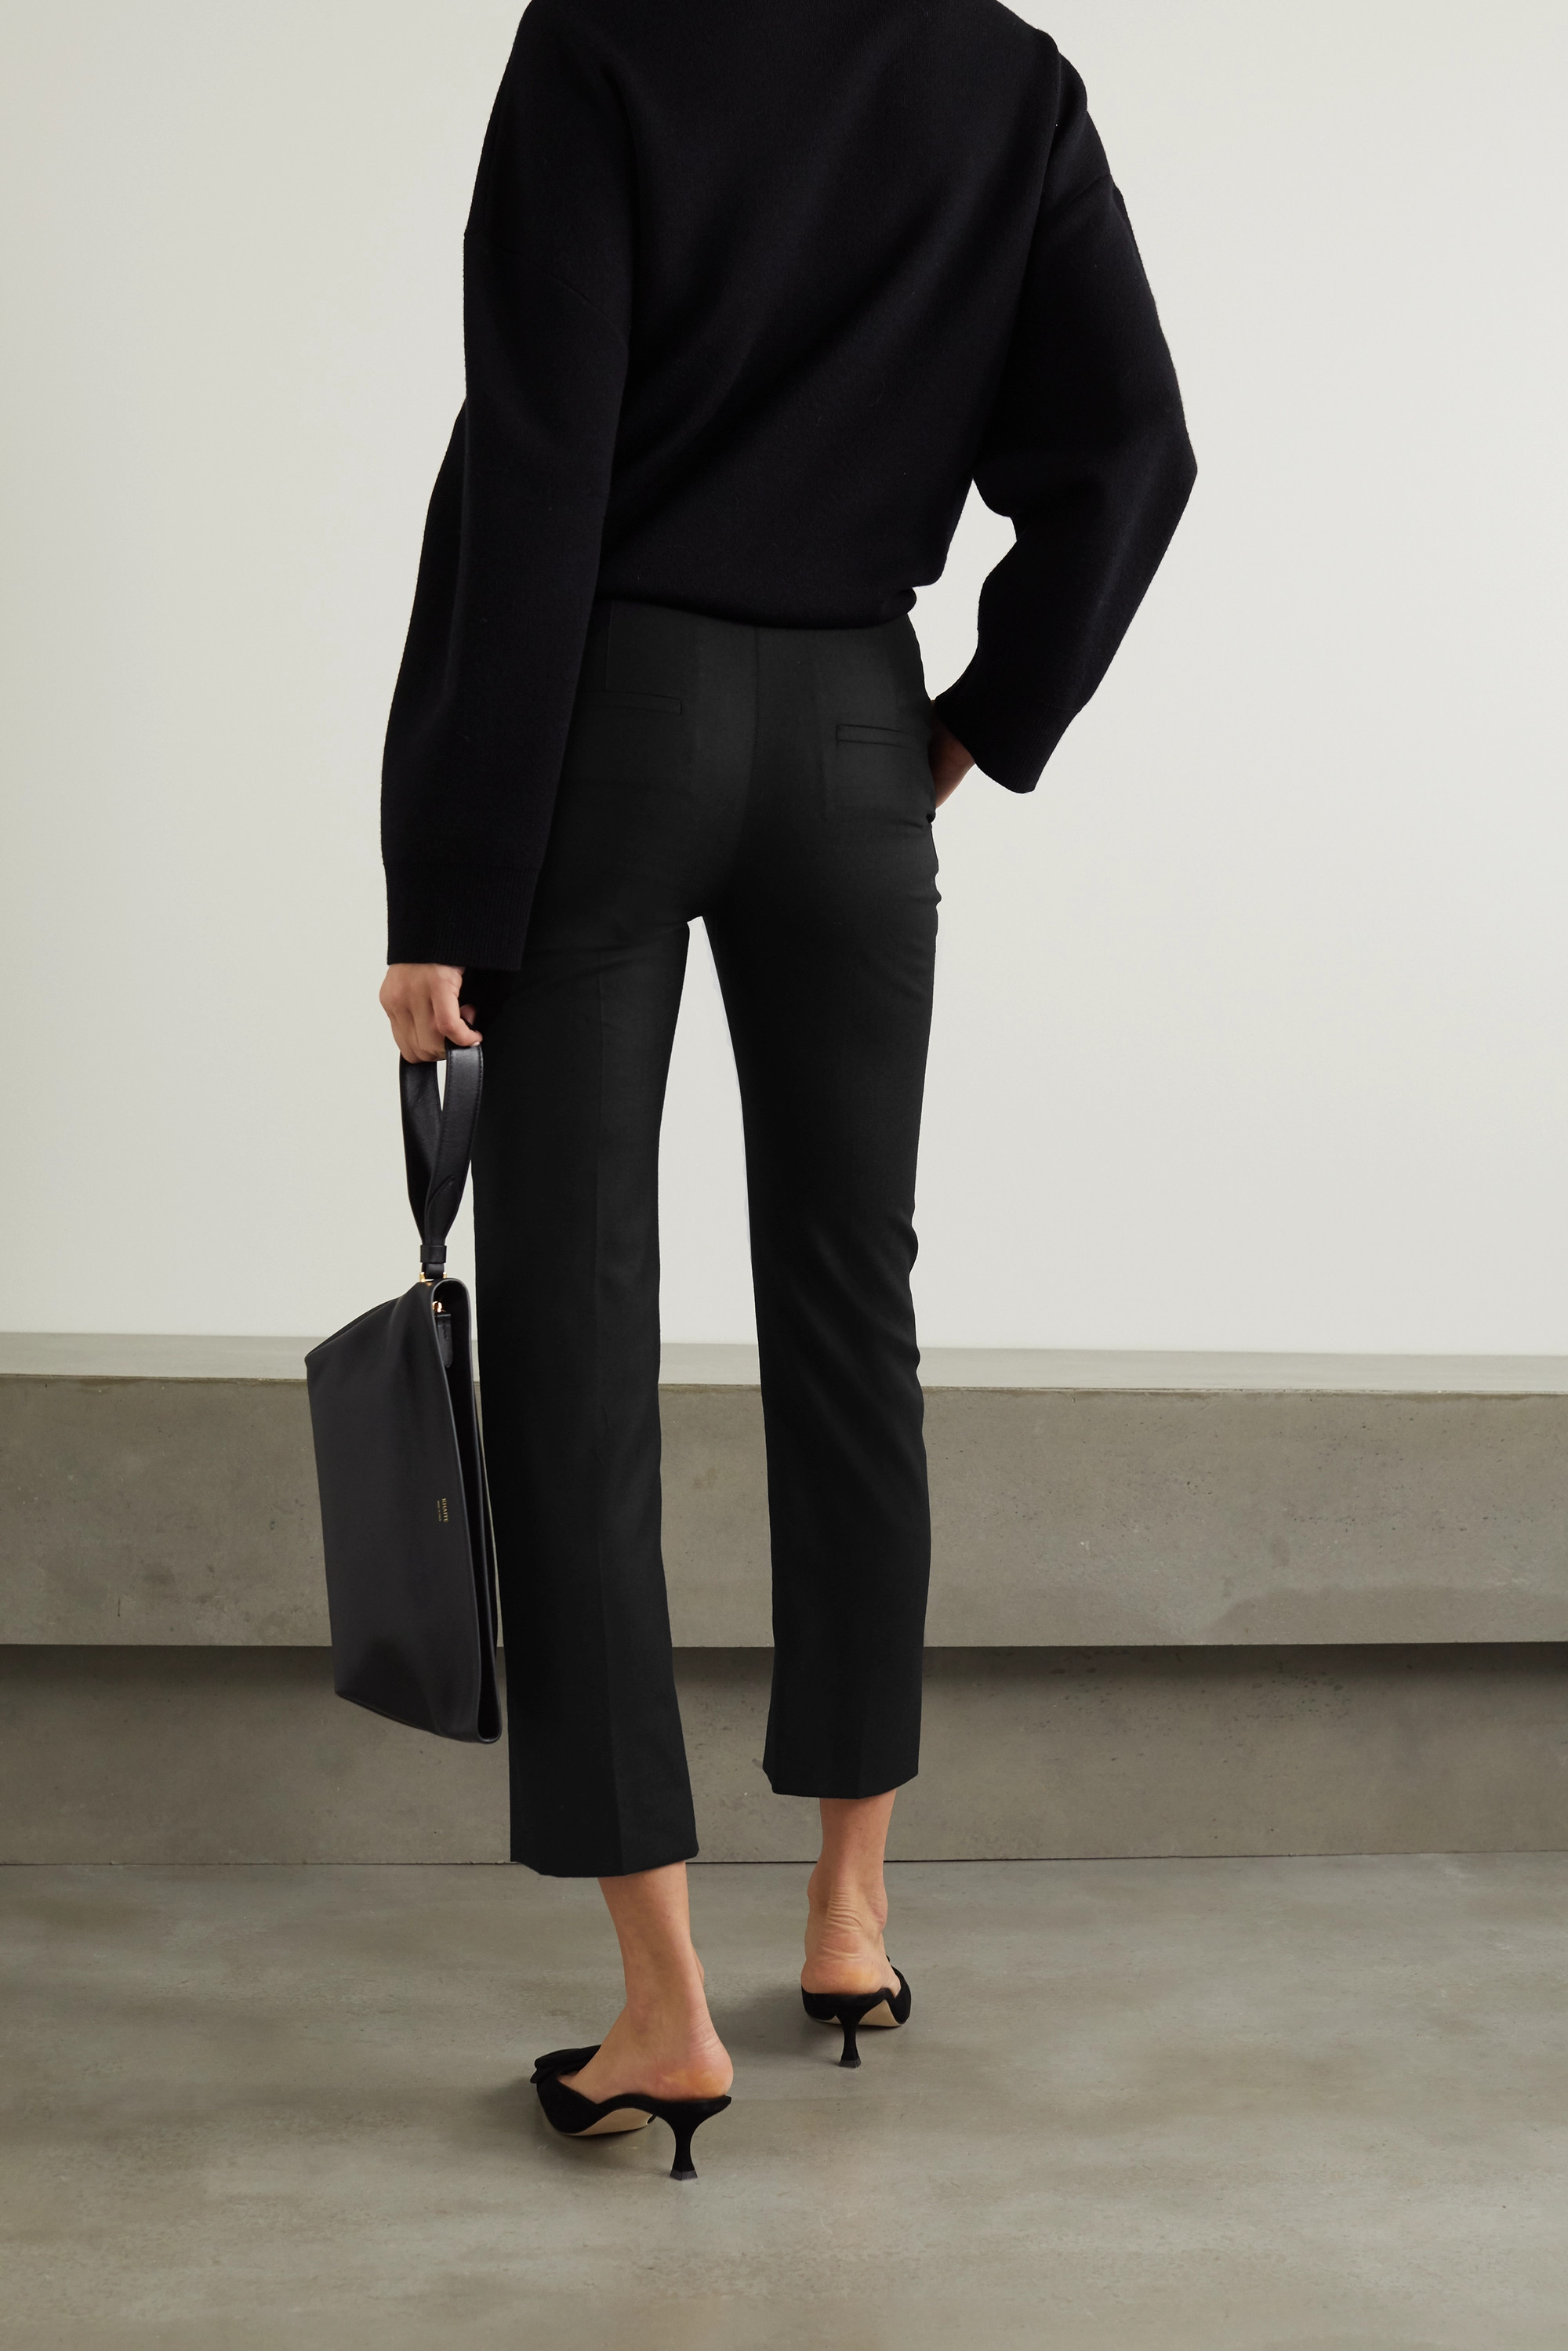 CASASOLA + NET SUSTAIN Milano wool and silk-blend skinny pants